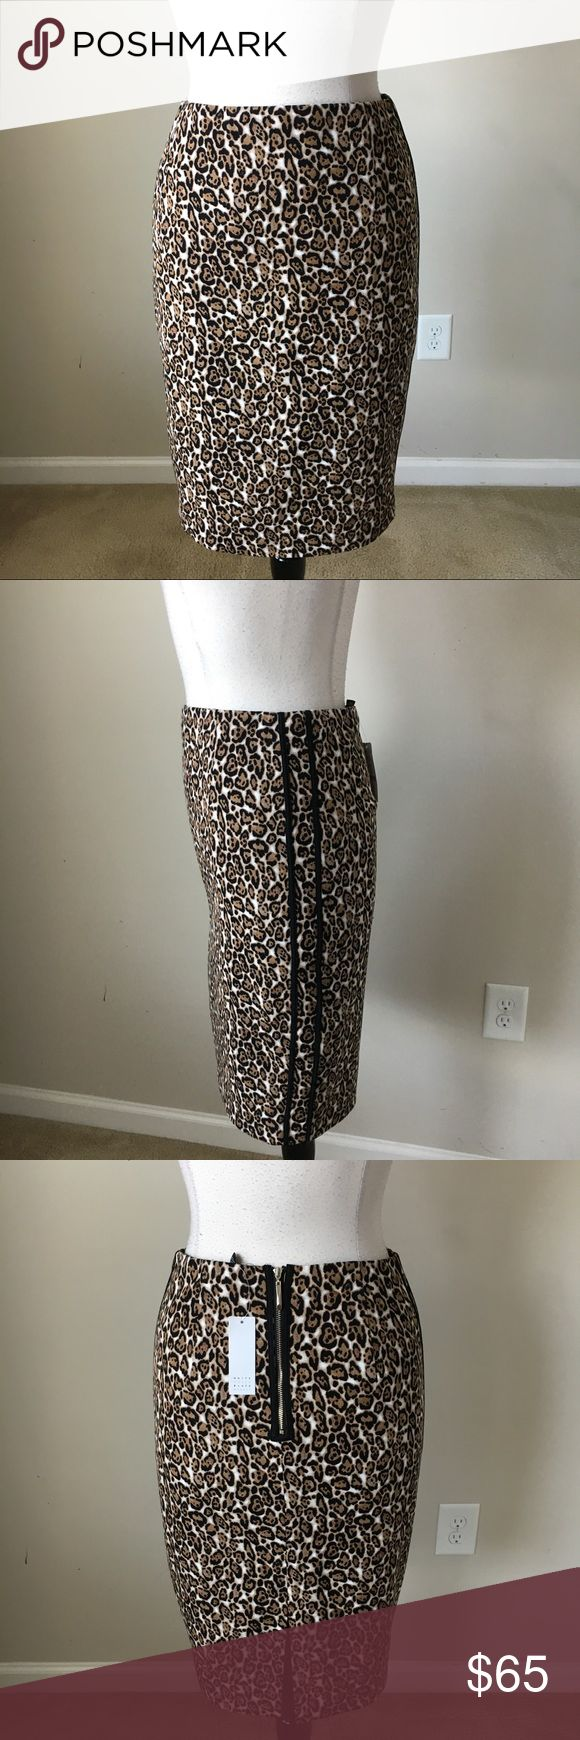 leopard animal print pencil skirt size 12 -Fully lined -Shell: 95% Cotton, 5% Spandex -Lining: 100% Polyester -Black side panels -Center back zip -Exposed back zipper -Measurements in inches:  Size 8: Bust 31.5, hip 40, length 22.5  Size 12: Bust 34, hip 43, length 23 White House Black Market Skirts Pencil